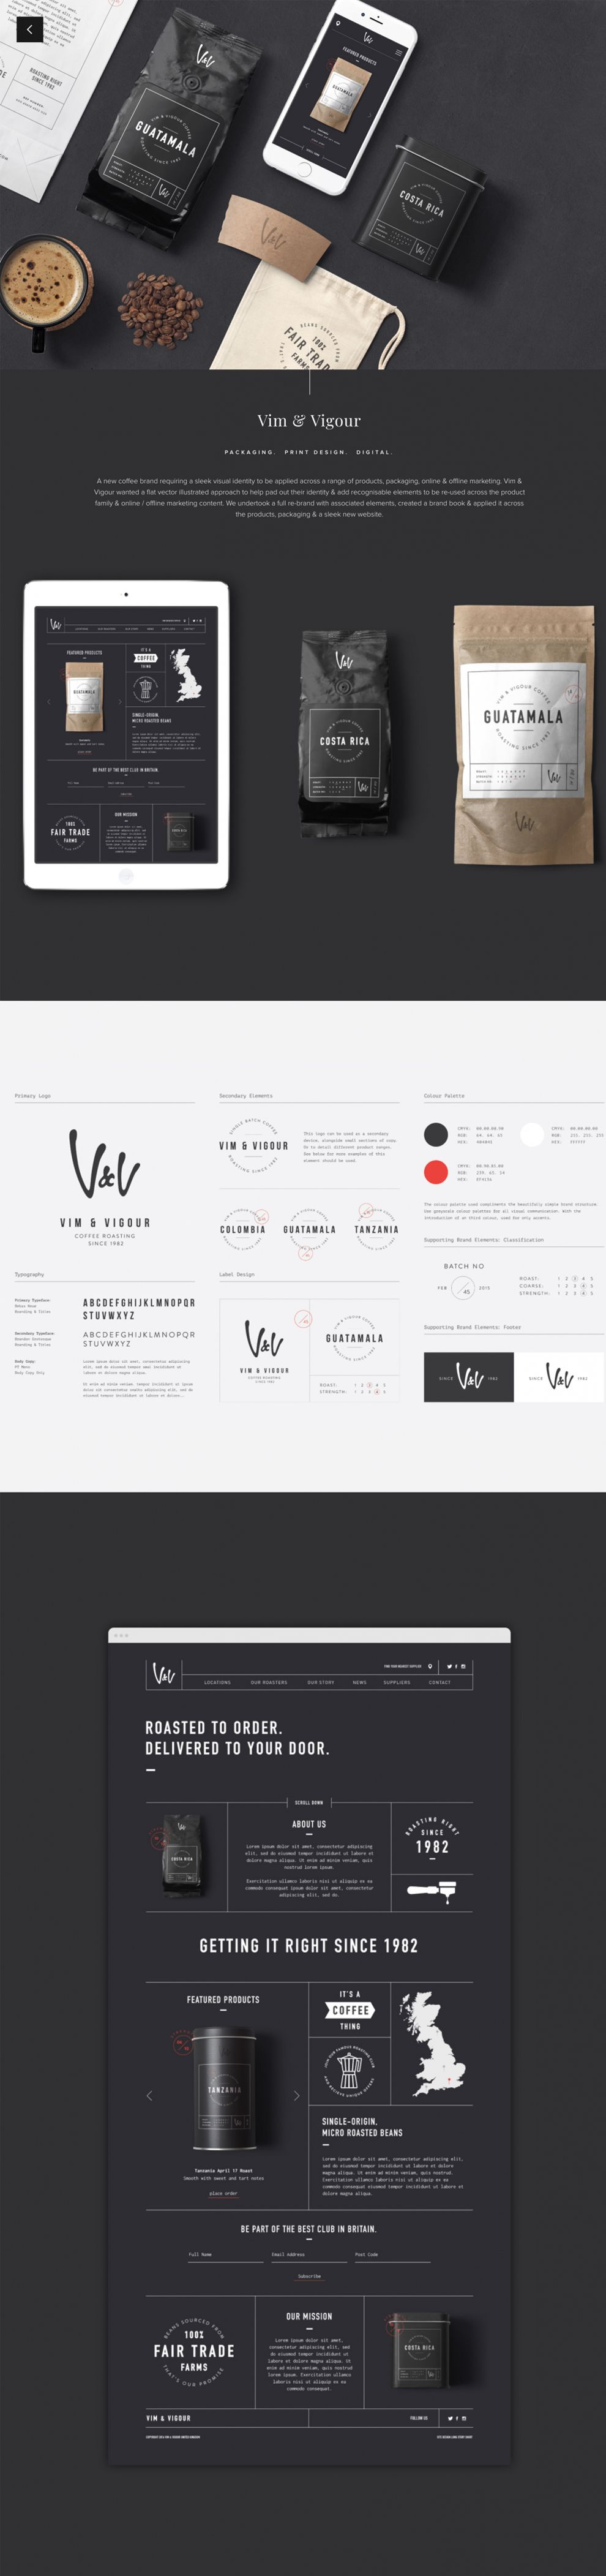 Long Story Short Design Clean About Page